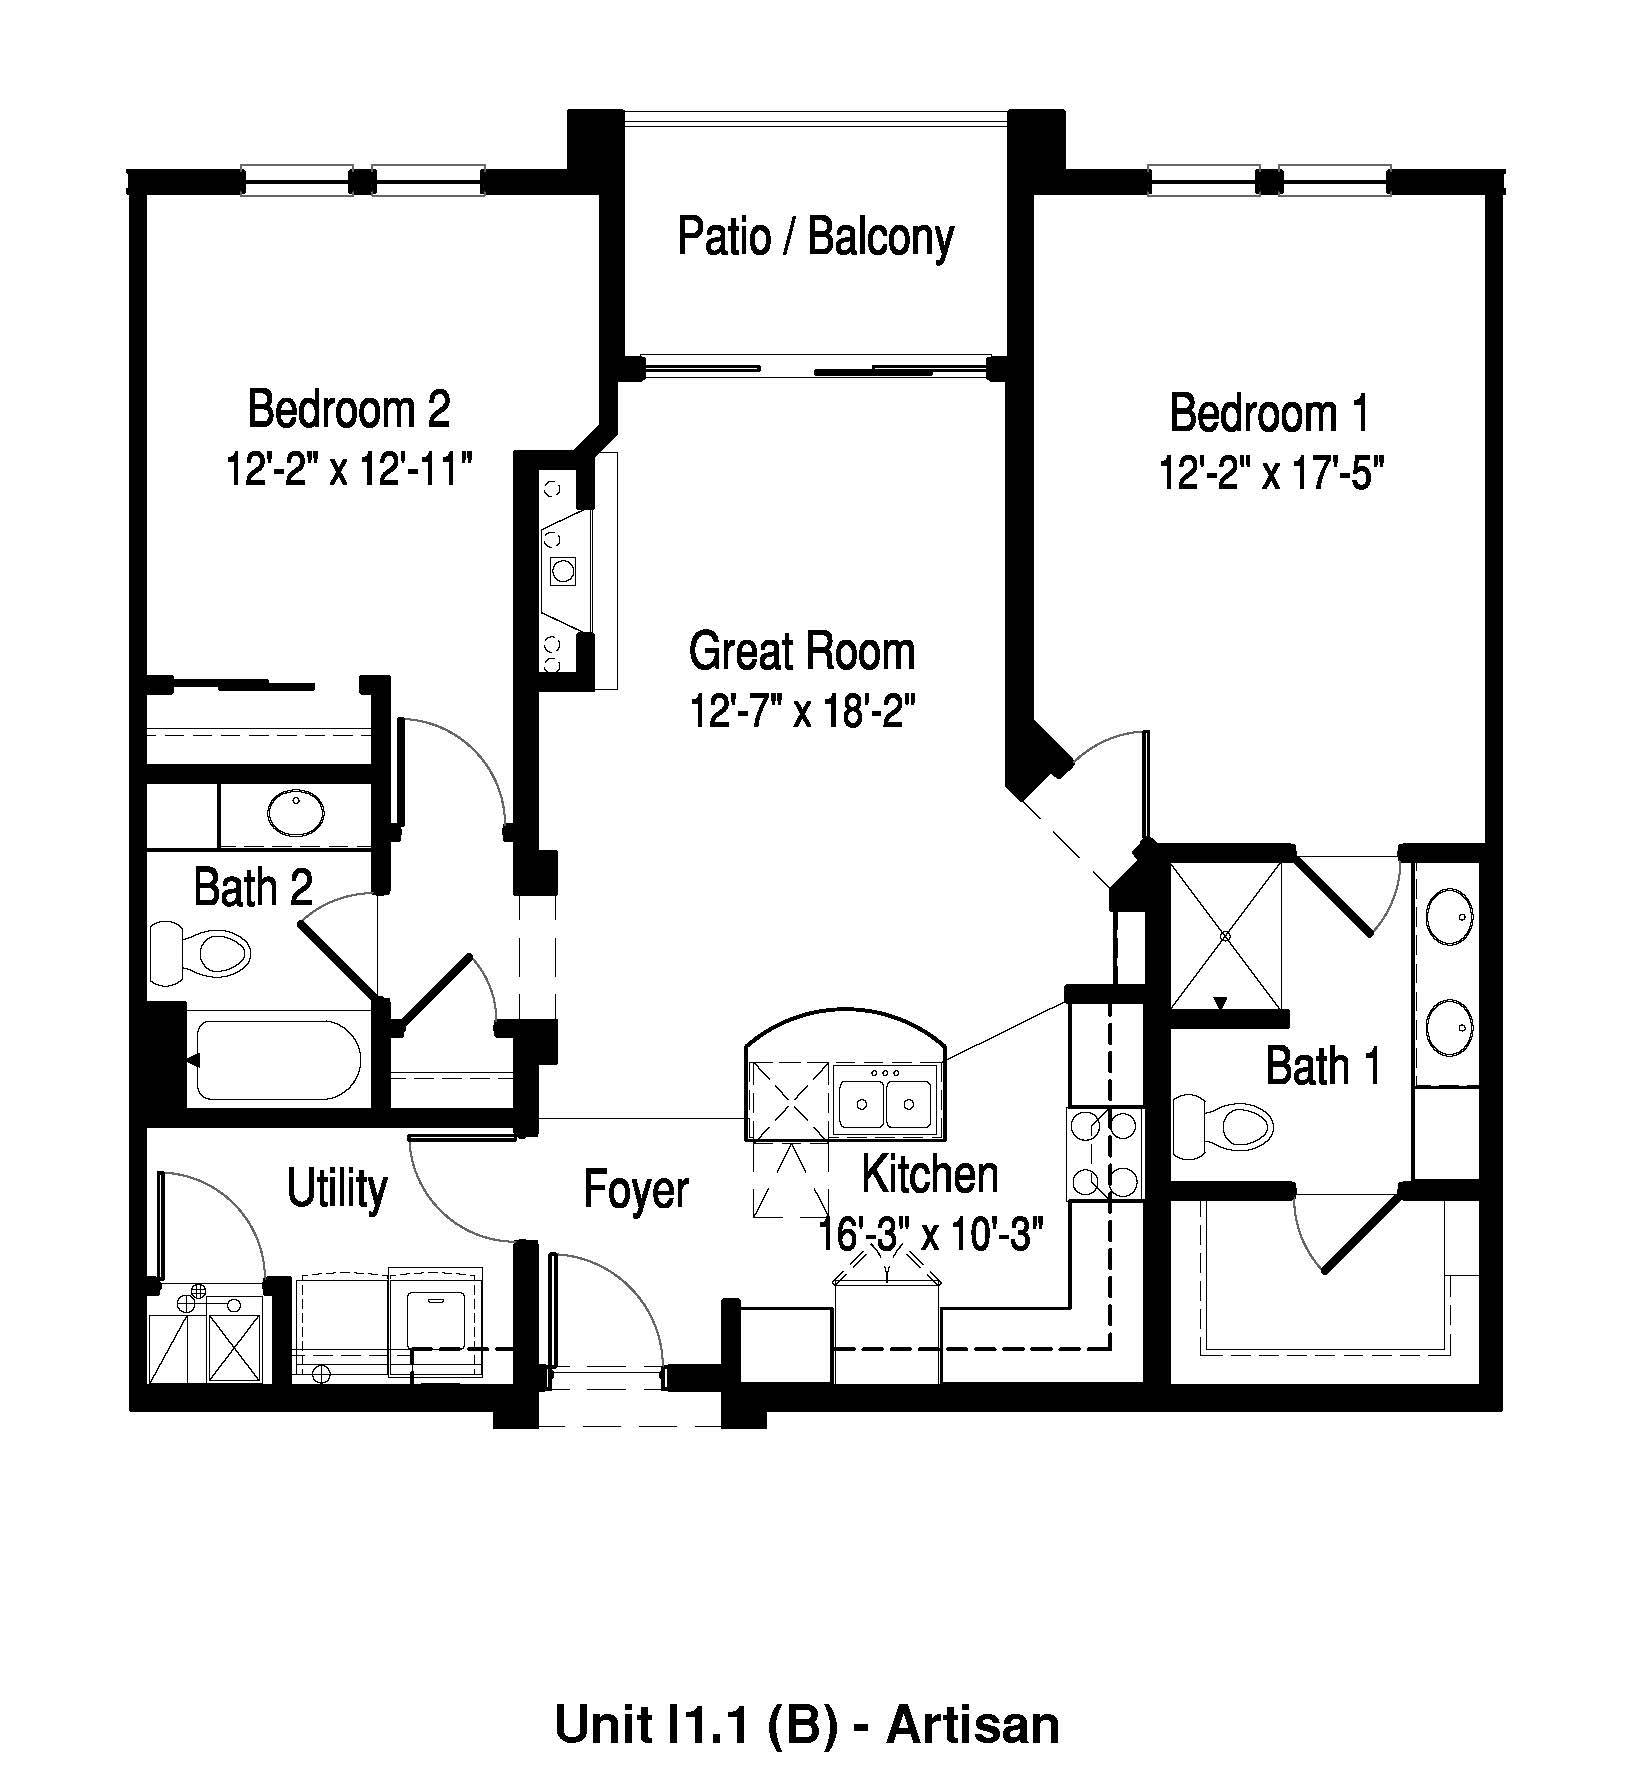 2 Bedroom, 2 Bath - 1,153 Sq. Ft. - The Artisan at Georgetown Square